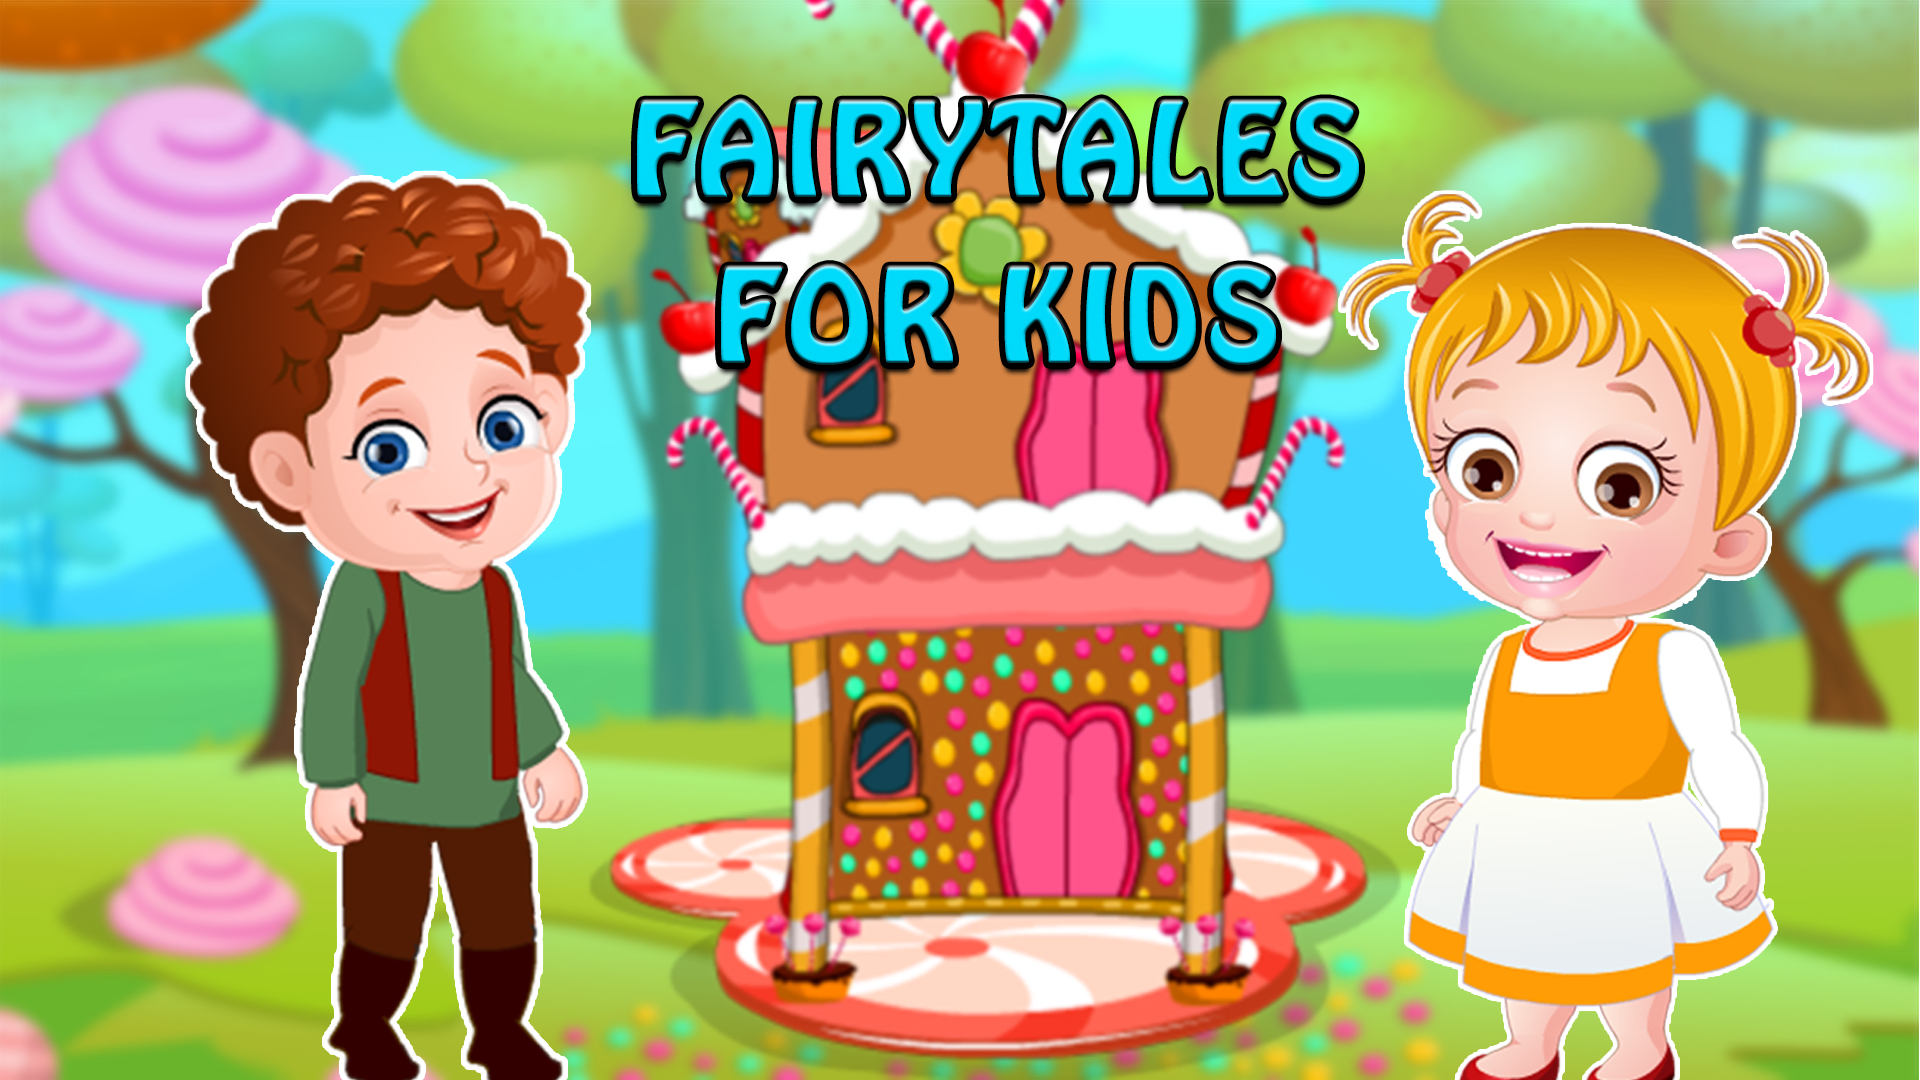 Fairytales for kids